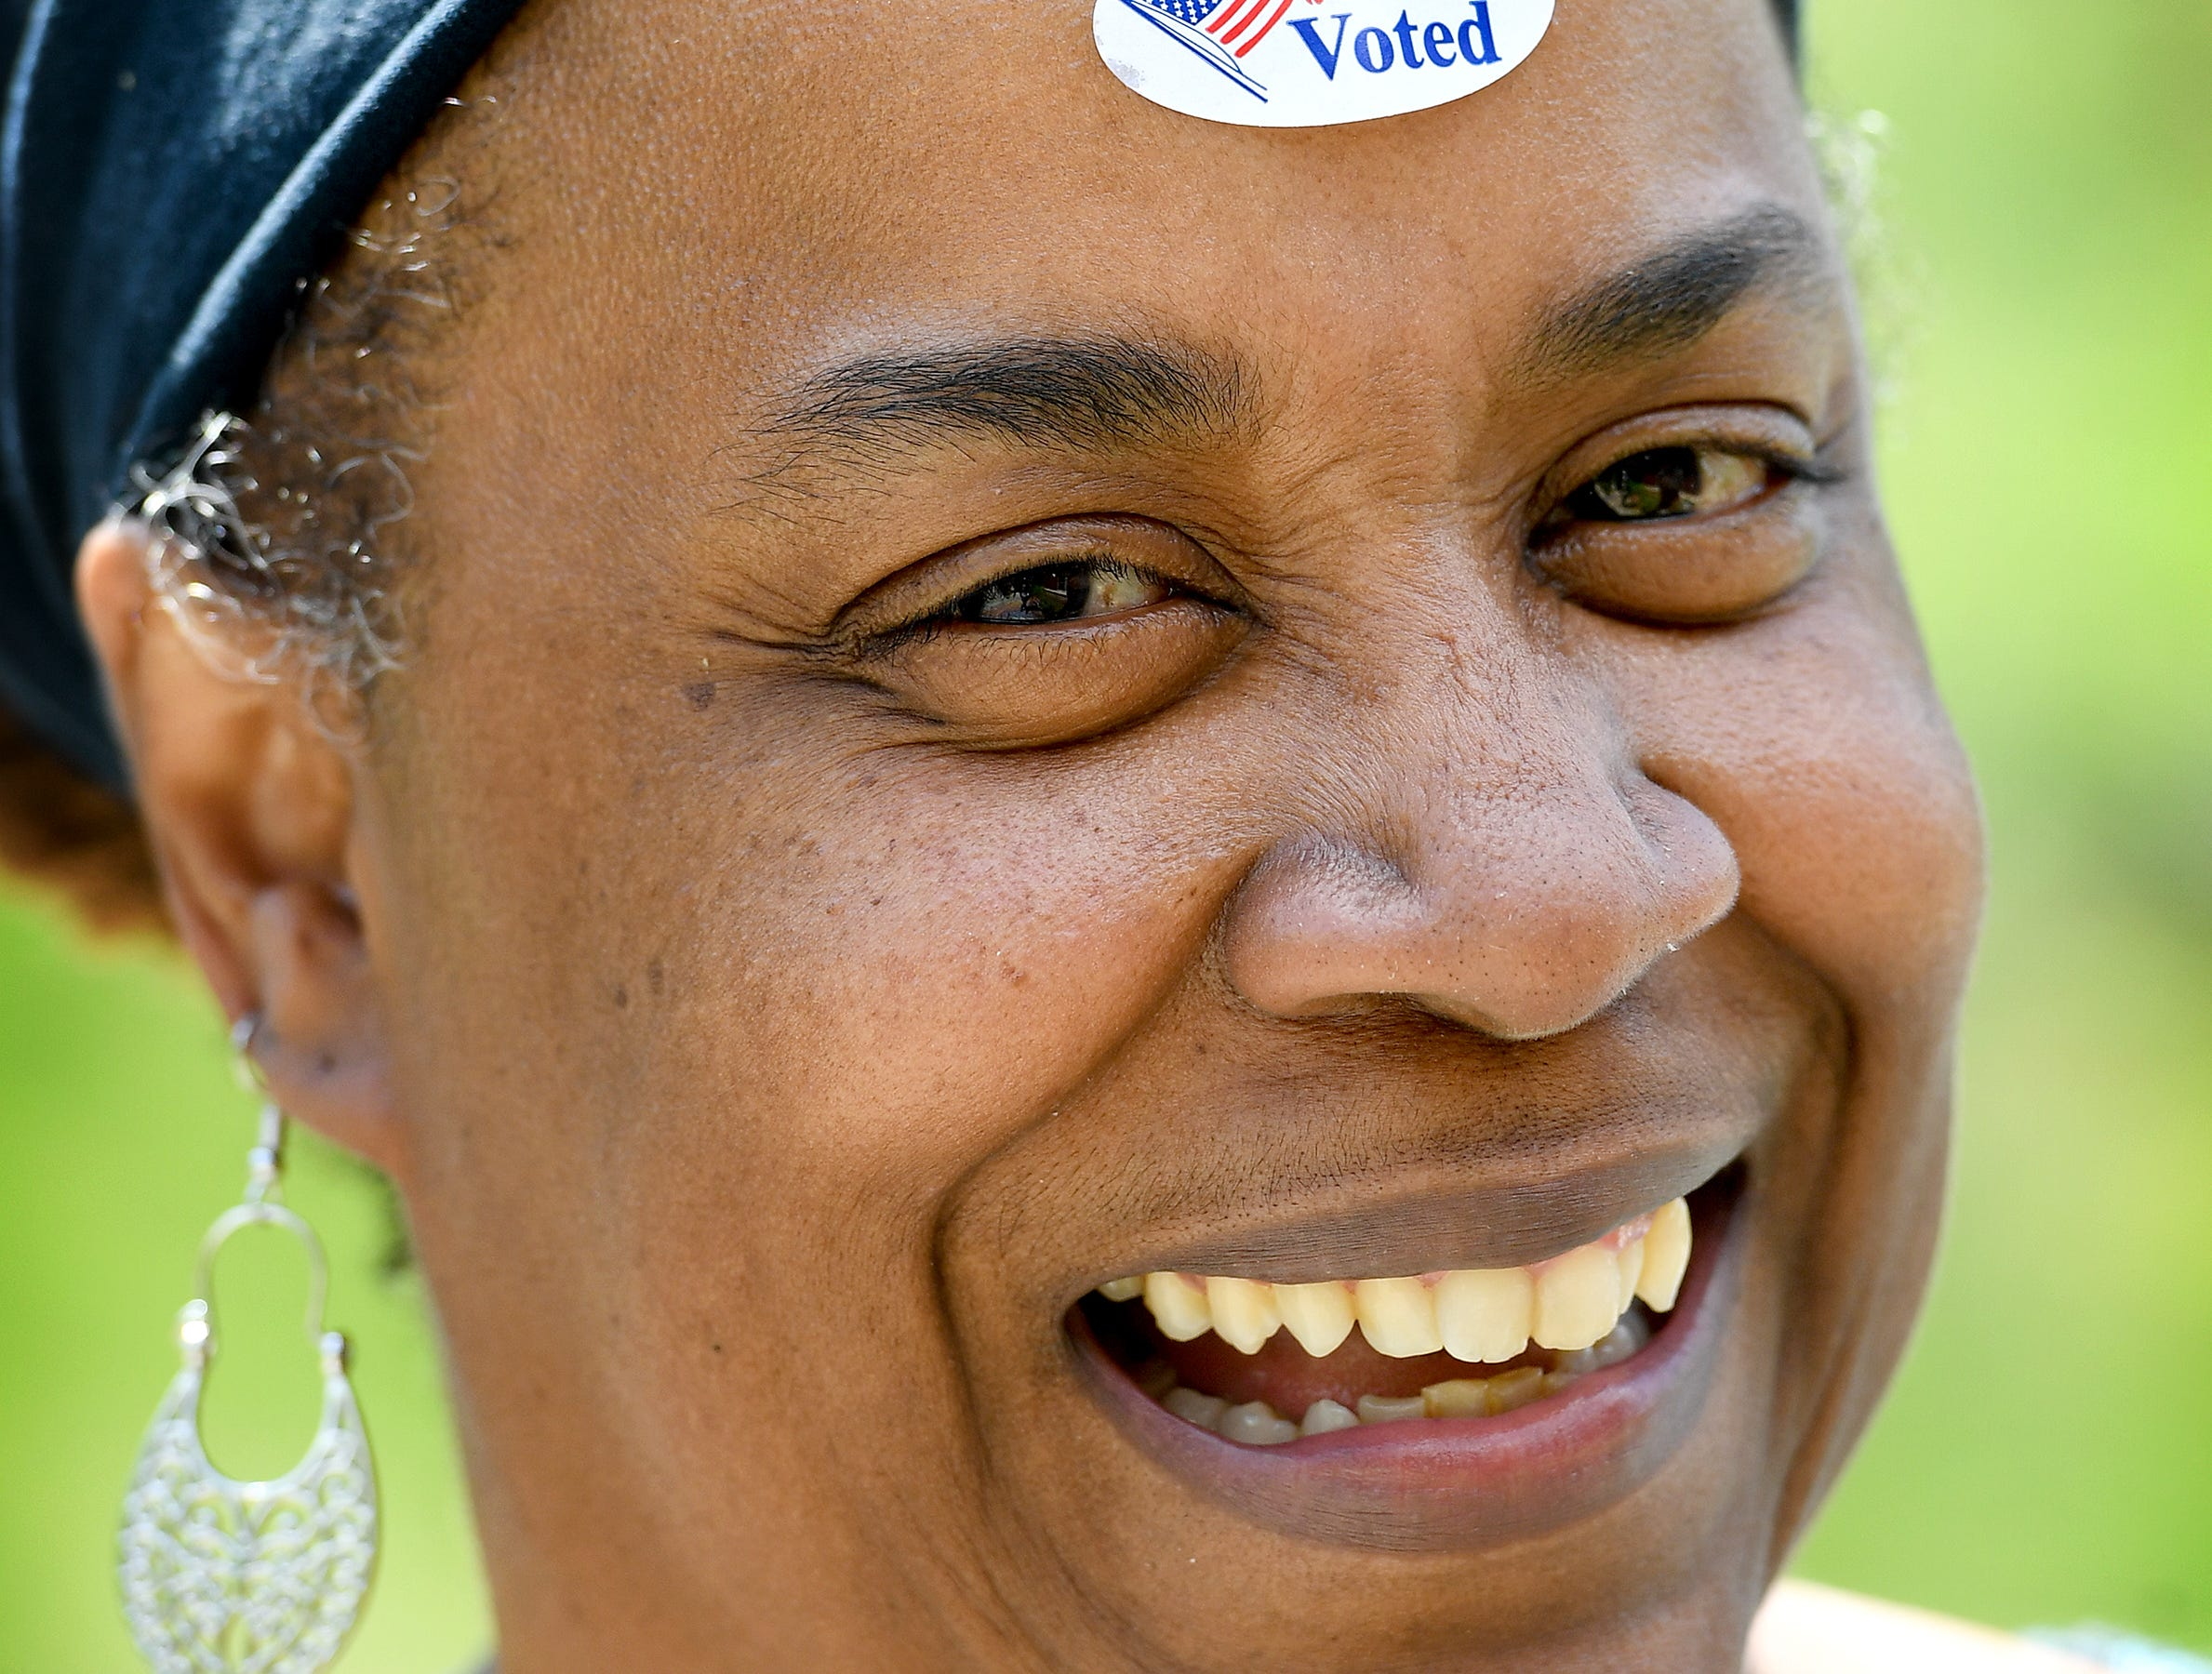 """""""I'm a voting superhero, they just haven't given me my cape yet,"""" MaRita Alexander joked as she wore her """"I Voted"""" sticker on her forehead after casting her ballot in the primary election at the Dr. Wesley Grant, Sr. Southside Center on Tuesday, May 8, 2018."""